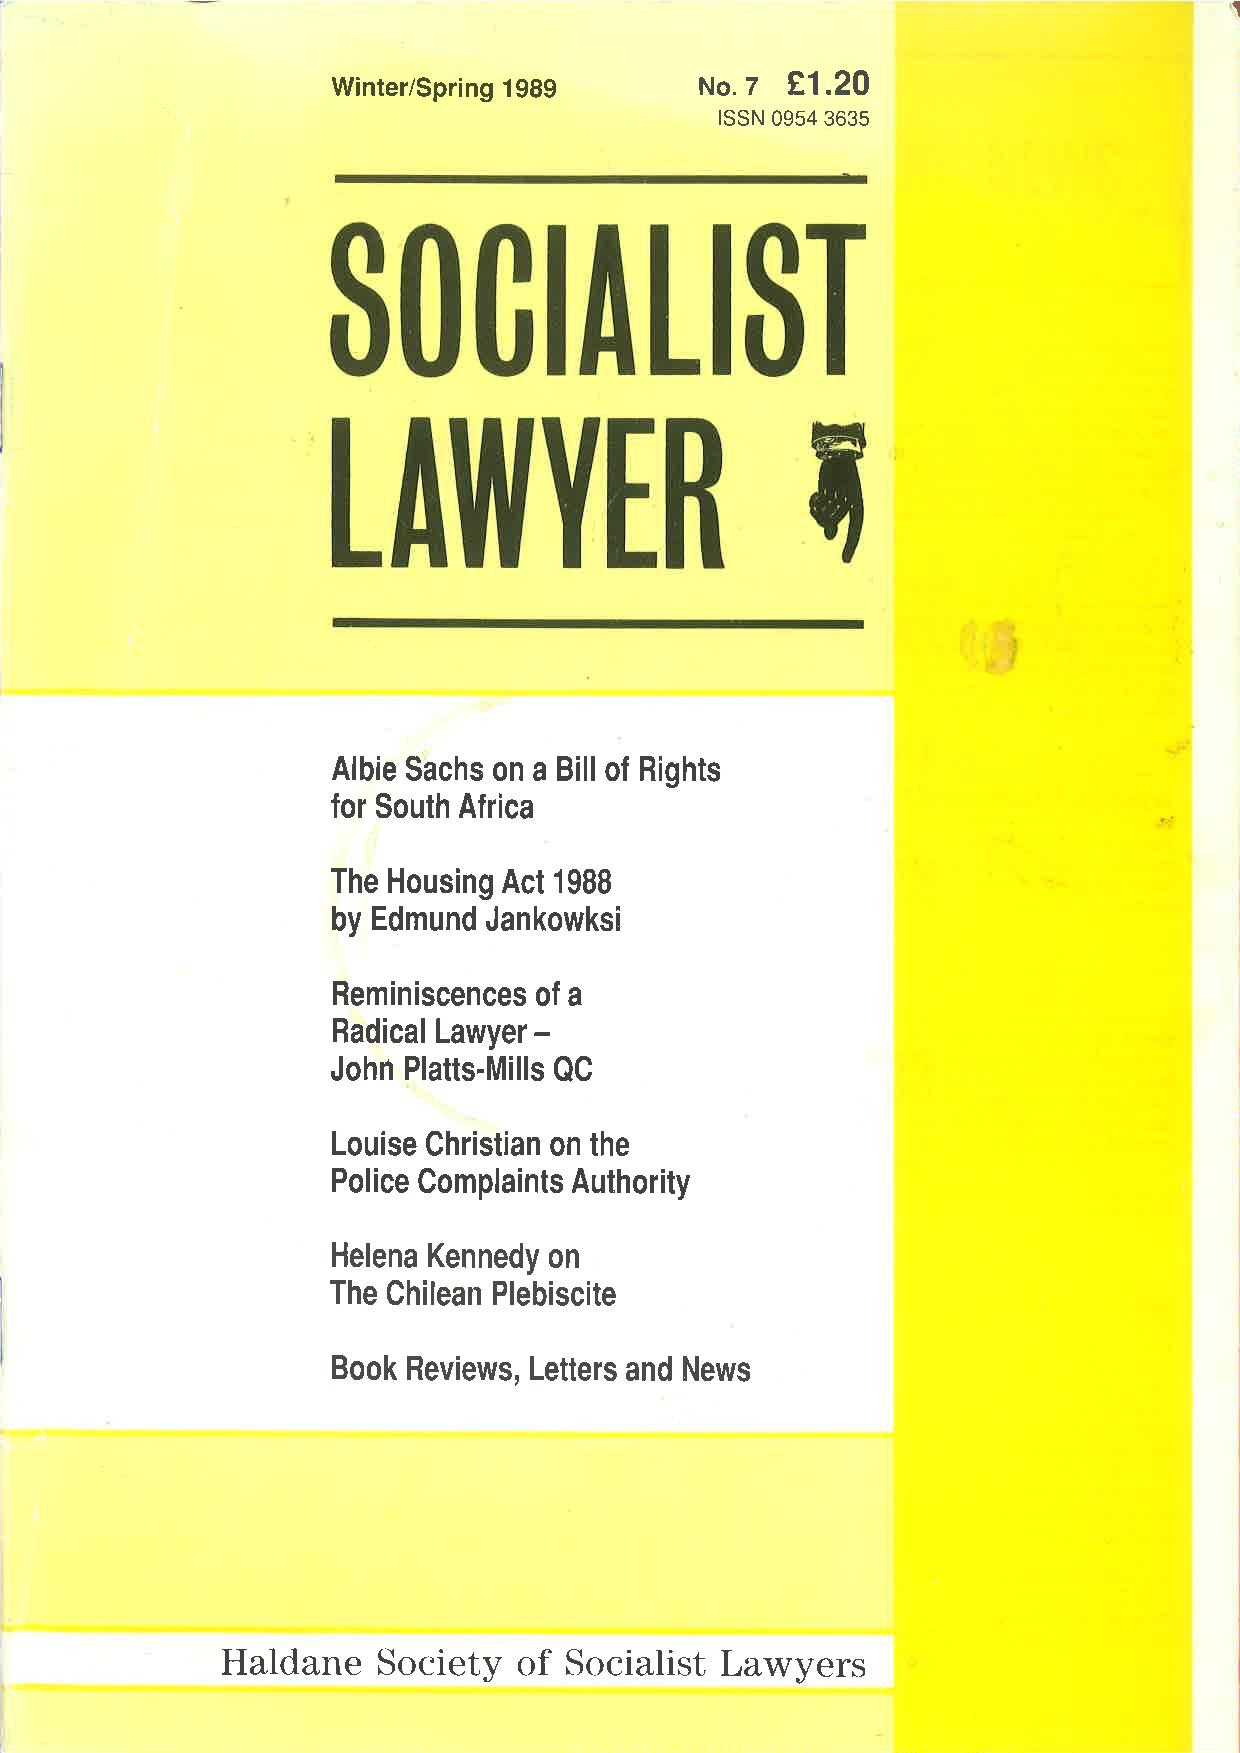 Socialist Lawyer Cover (7).jpg